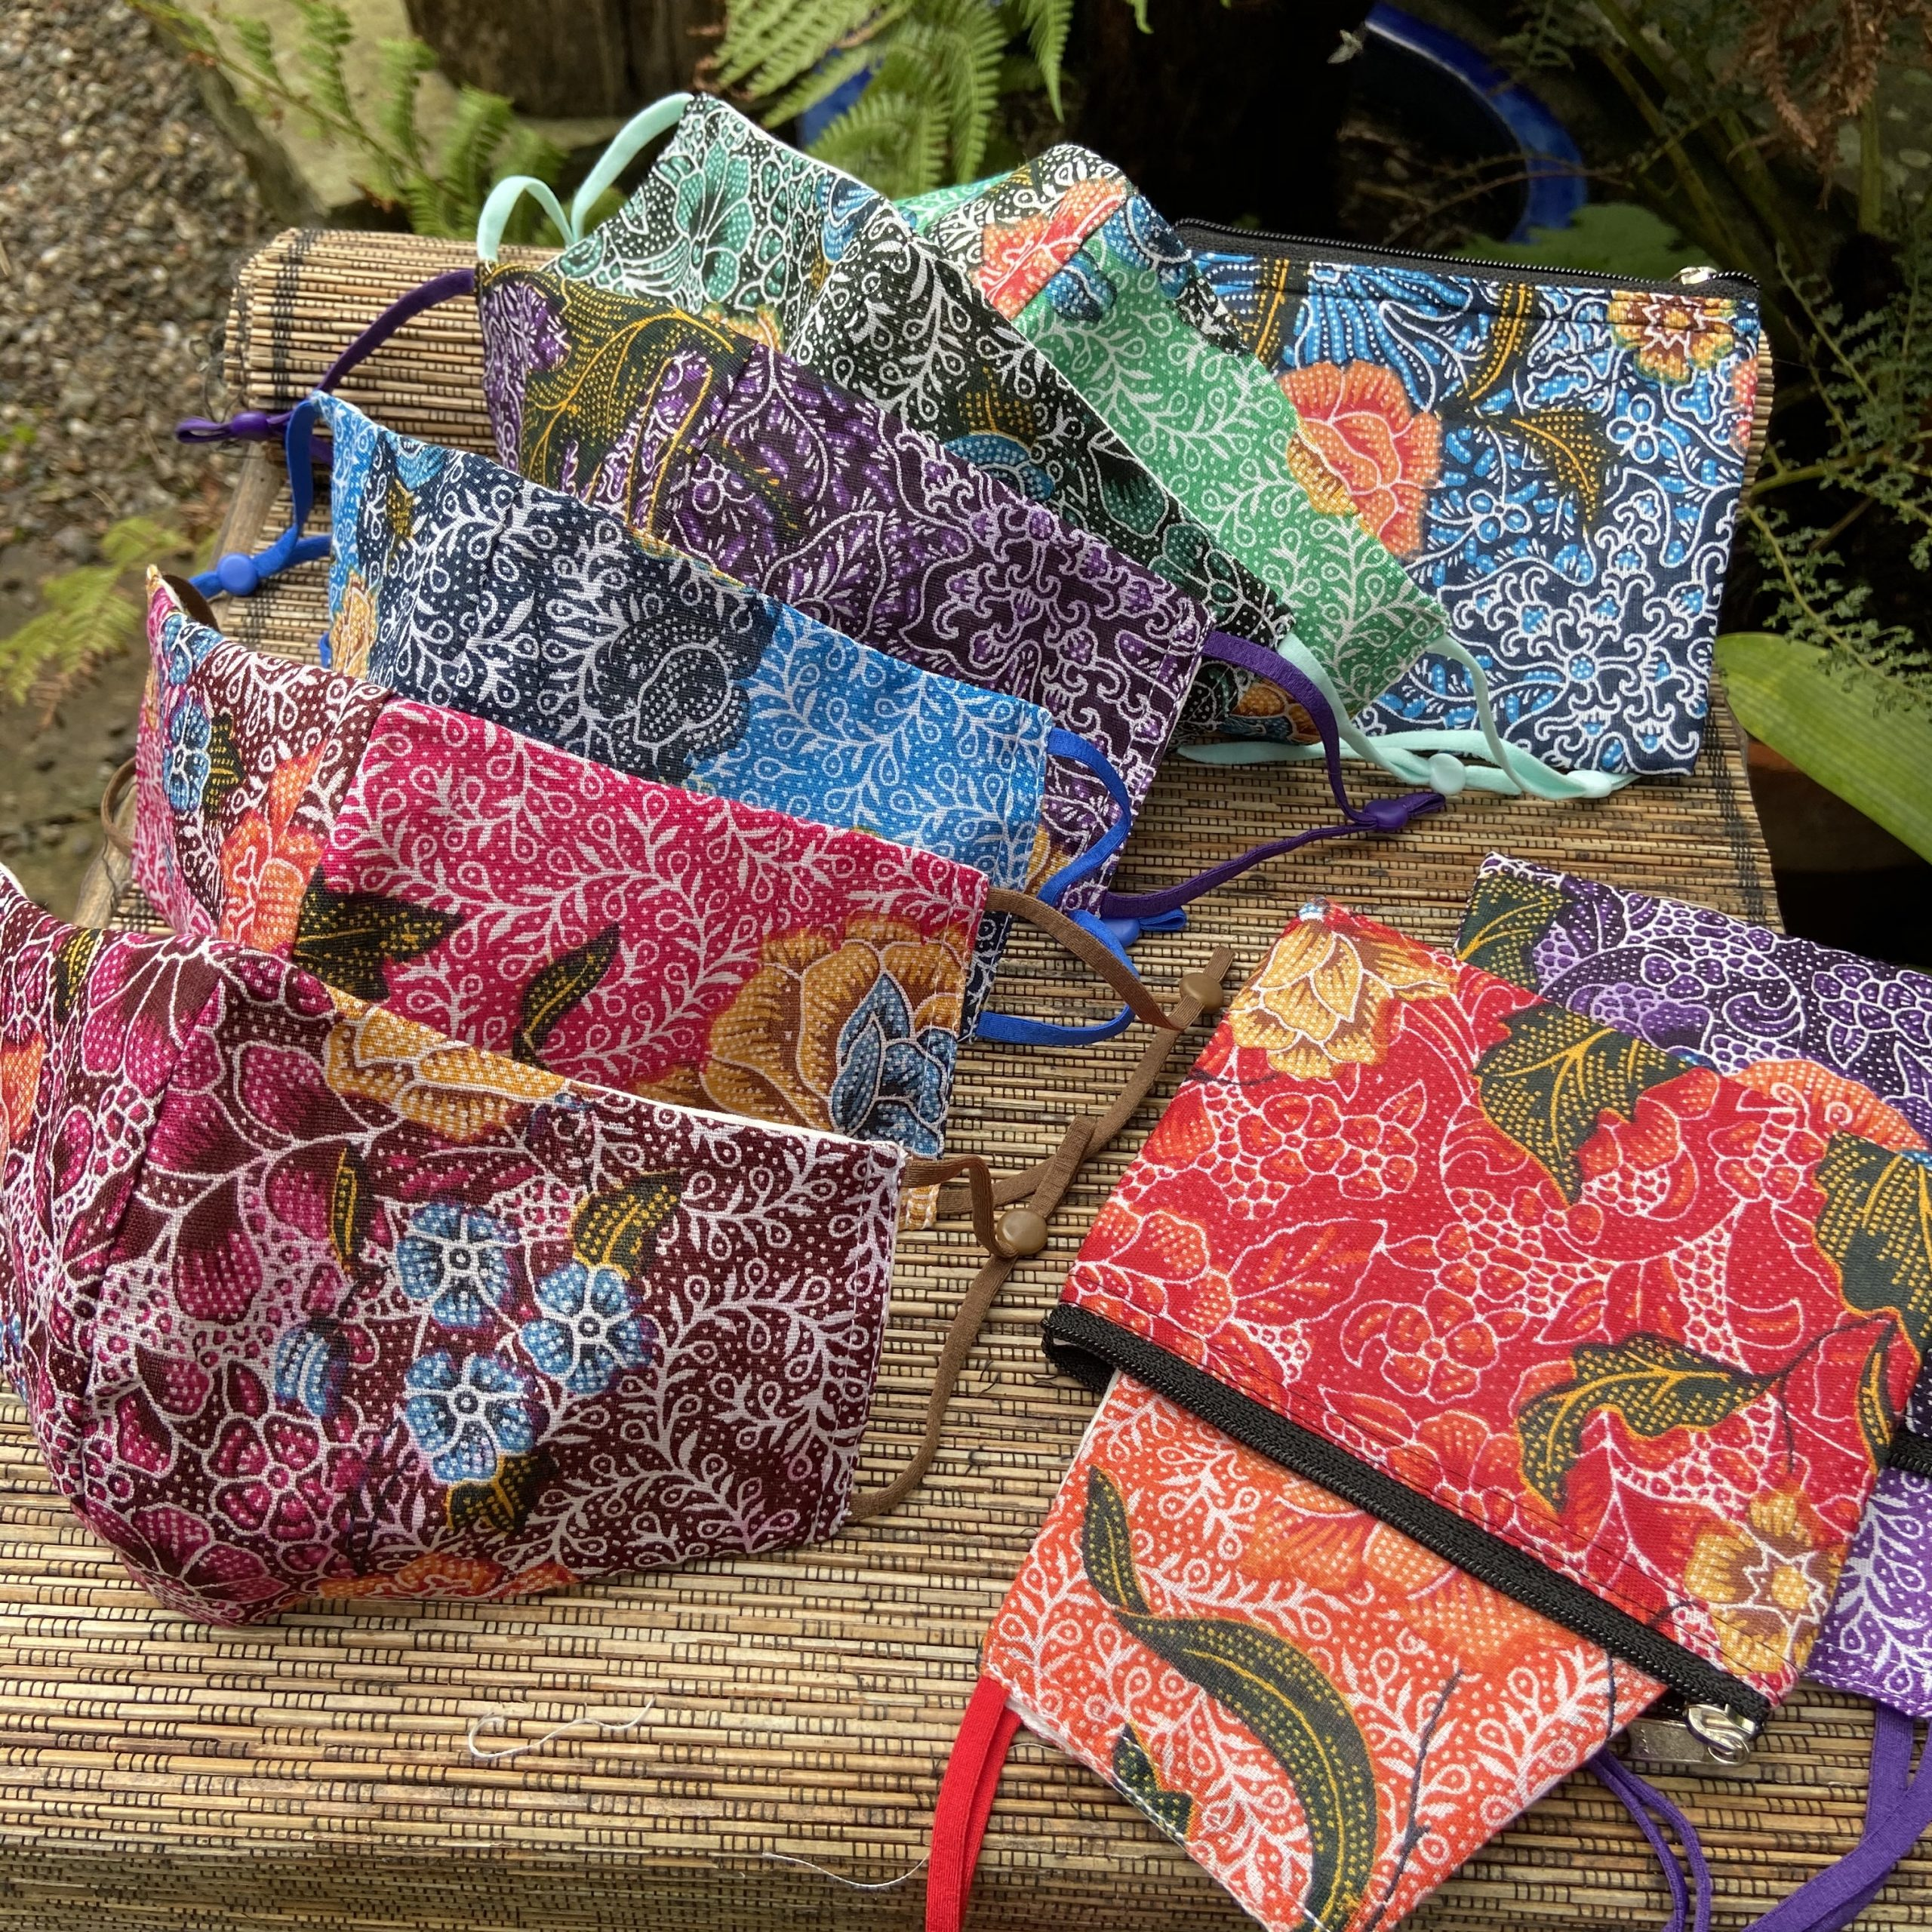 New face masks in beautiful floral batik prints are now in stock